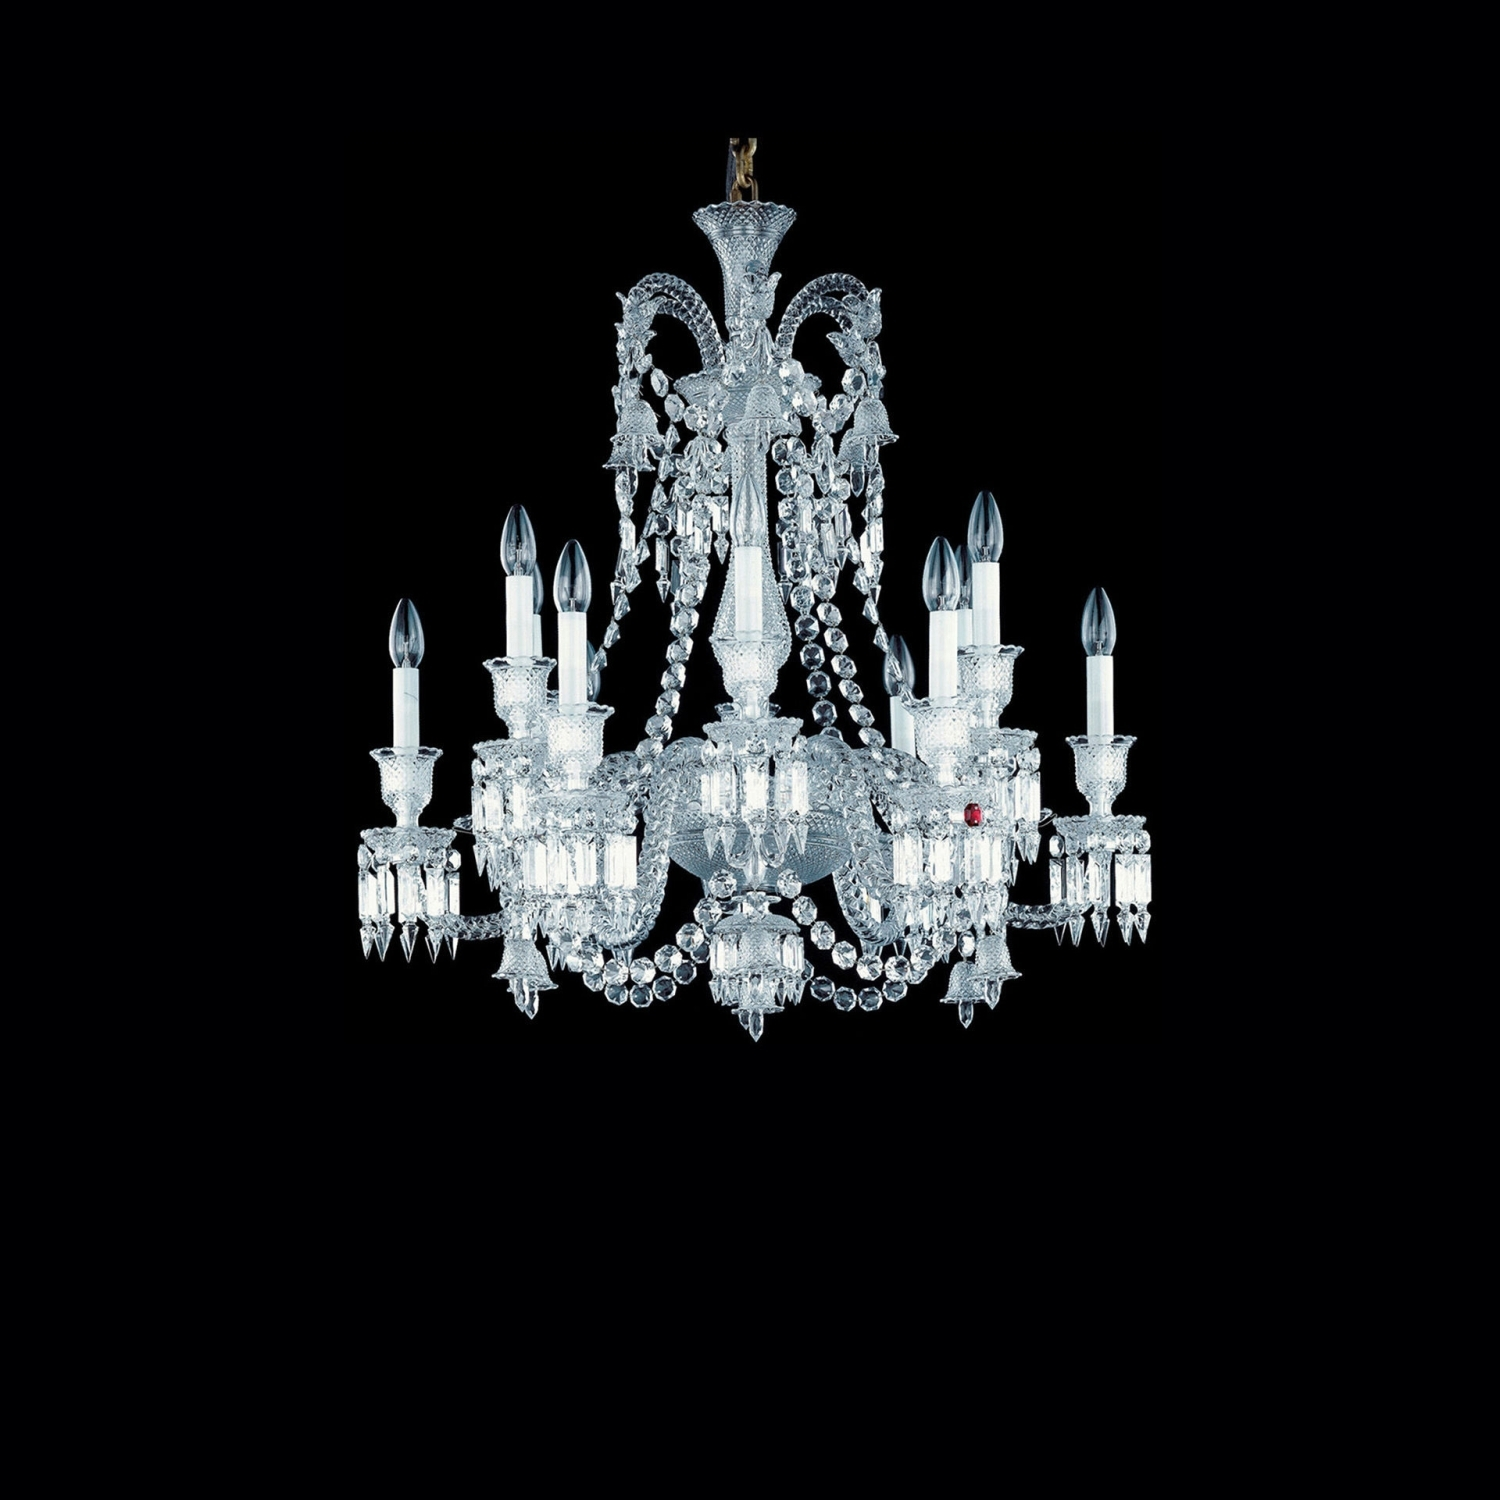 Chandelier Clear 12l Baccarat Zenith 2606555 Within Short Chandelier (Image 3 of 15)